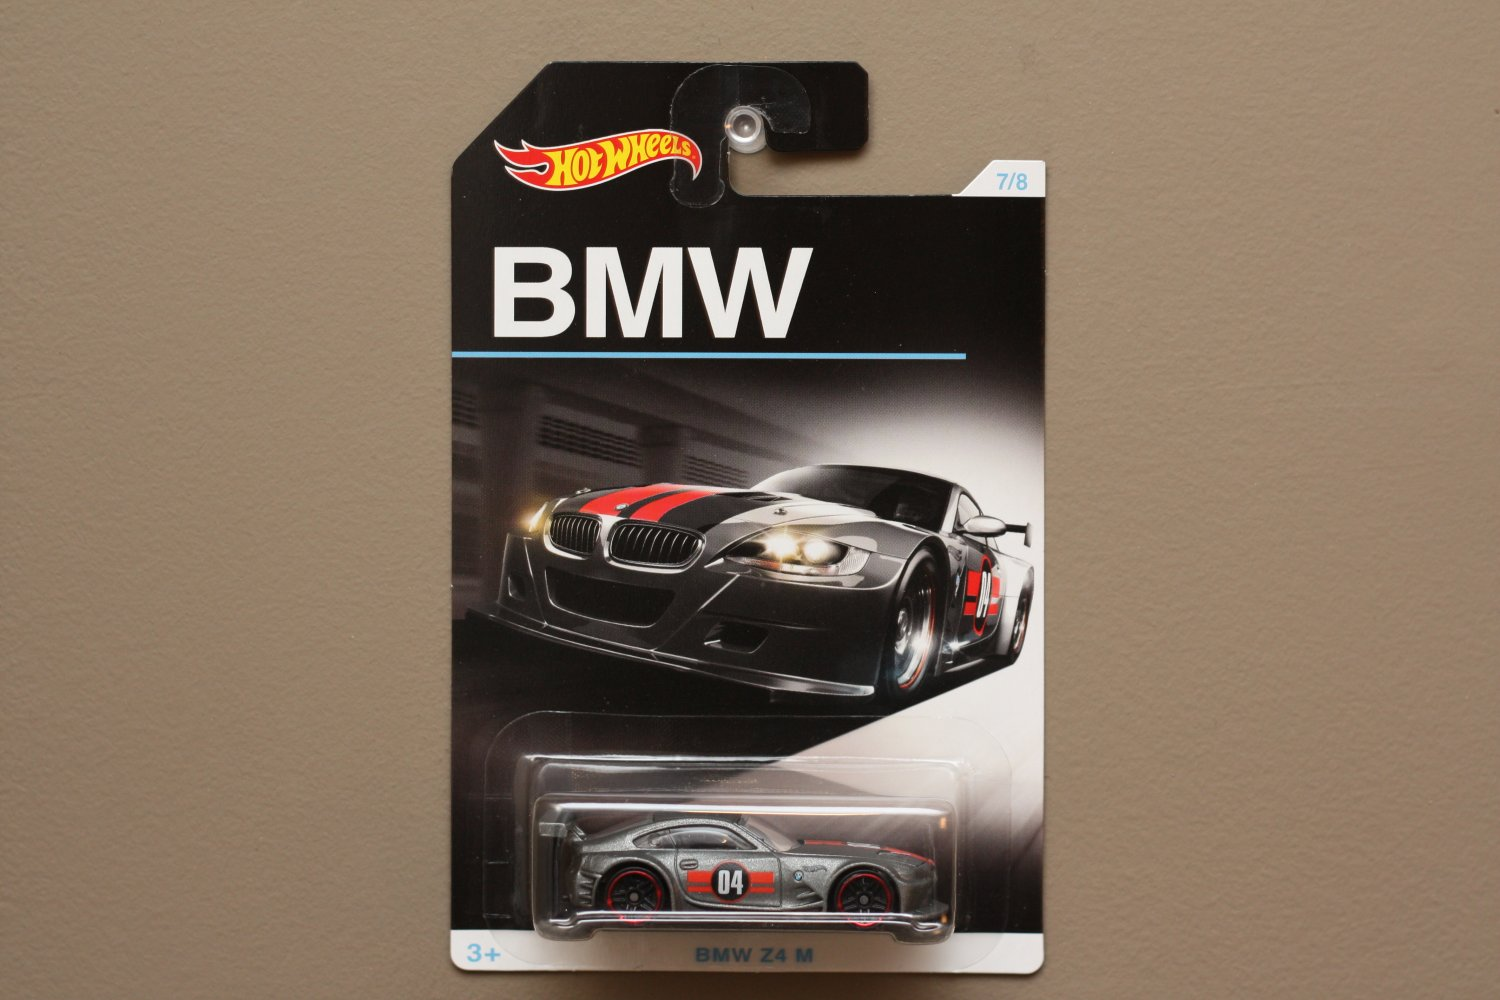 Hot Wheels 2016 Bmw Series Bmw Z4 M